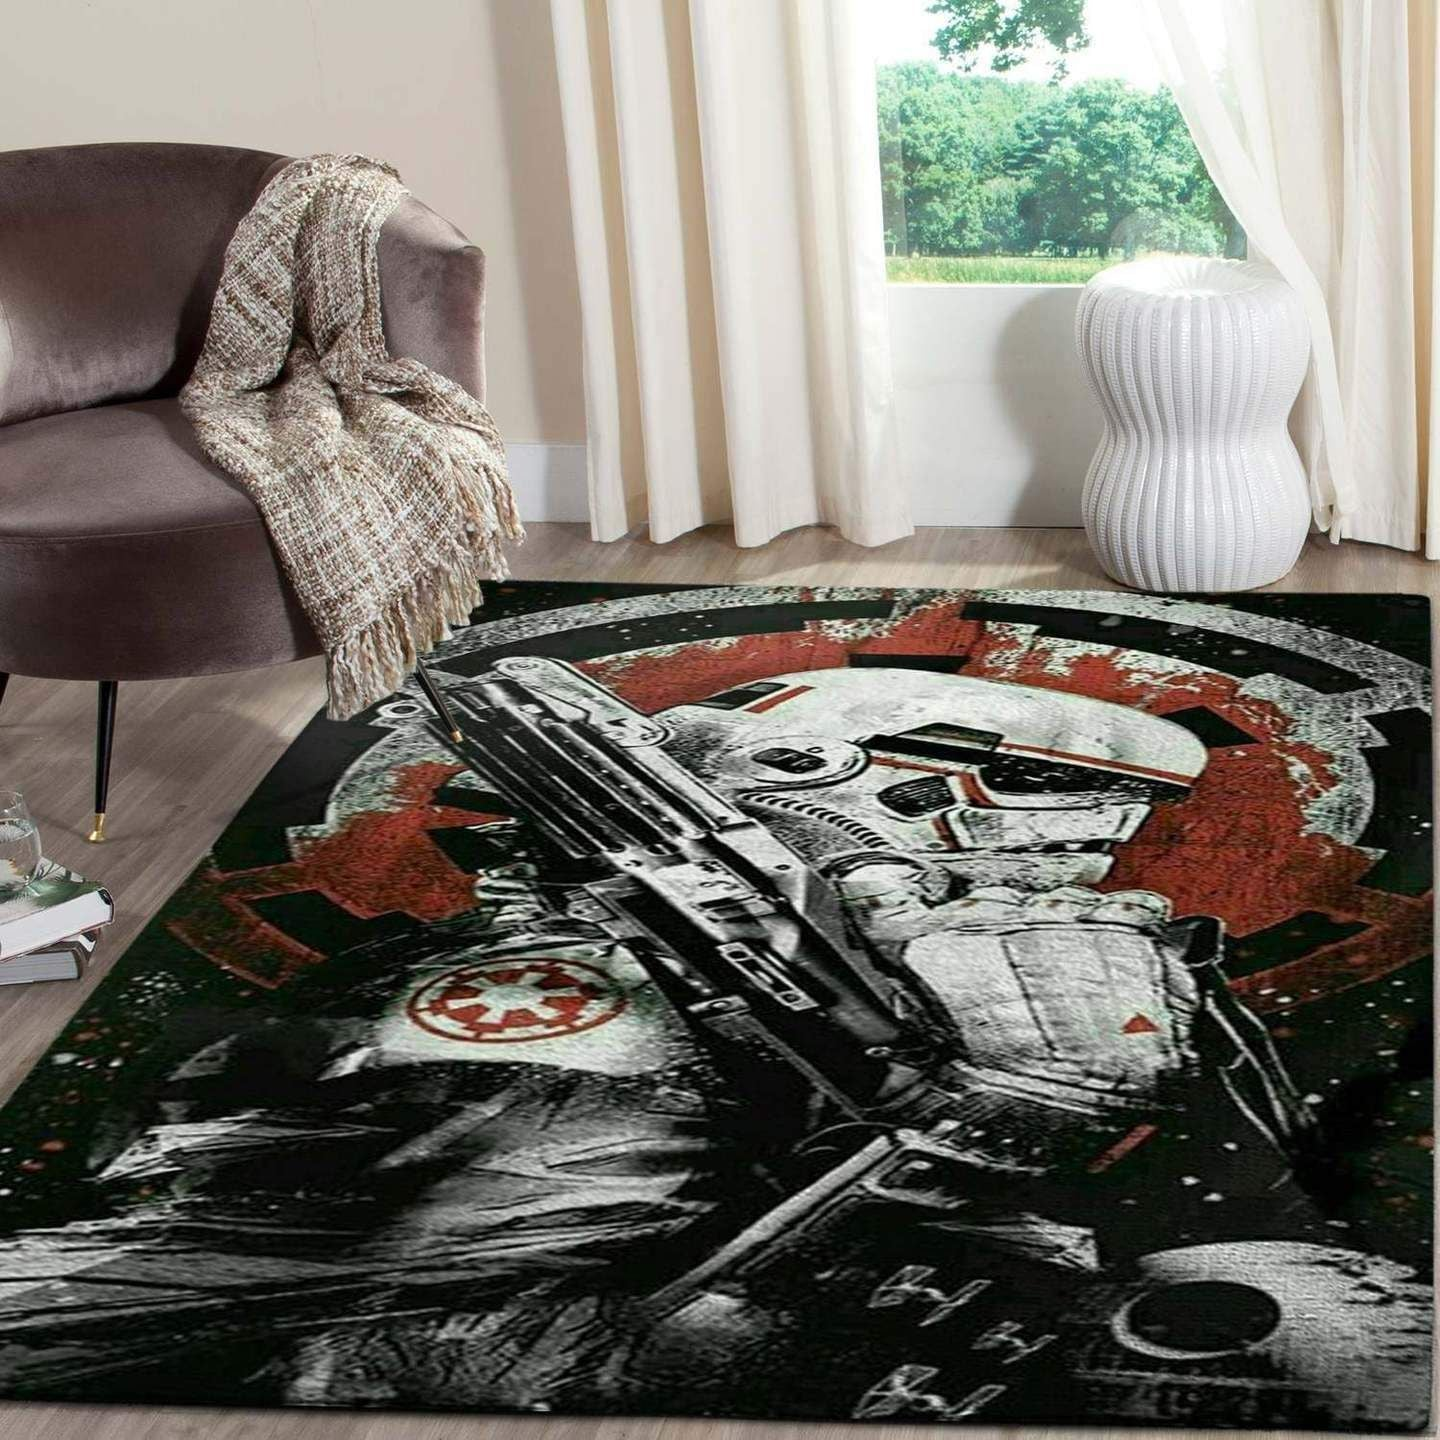 Star Wars Area Rugs Living Room Carpet Floor Home Decor RCDD81F30594